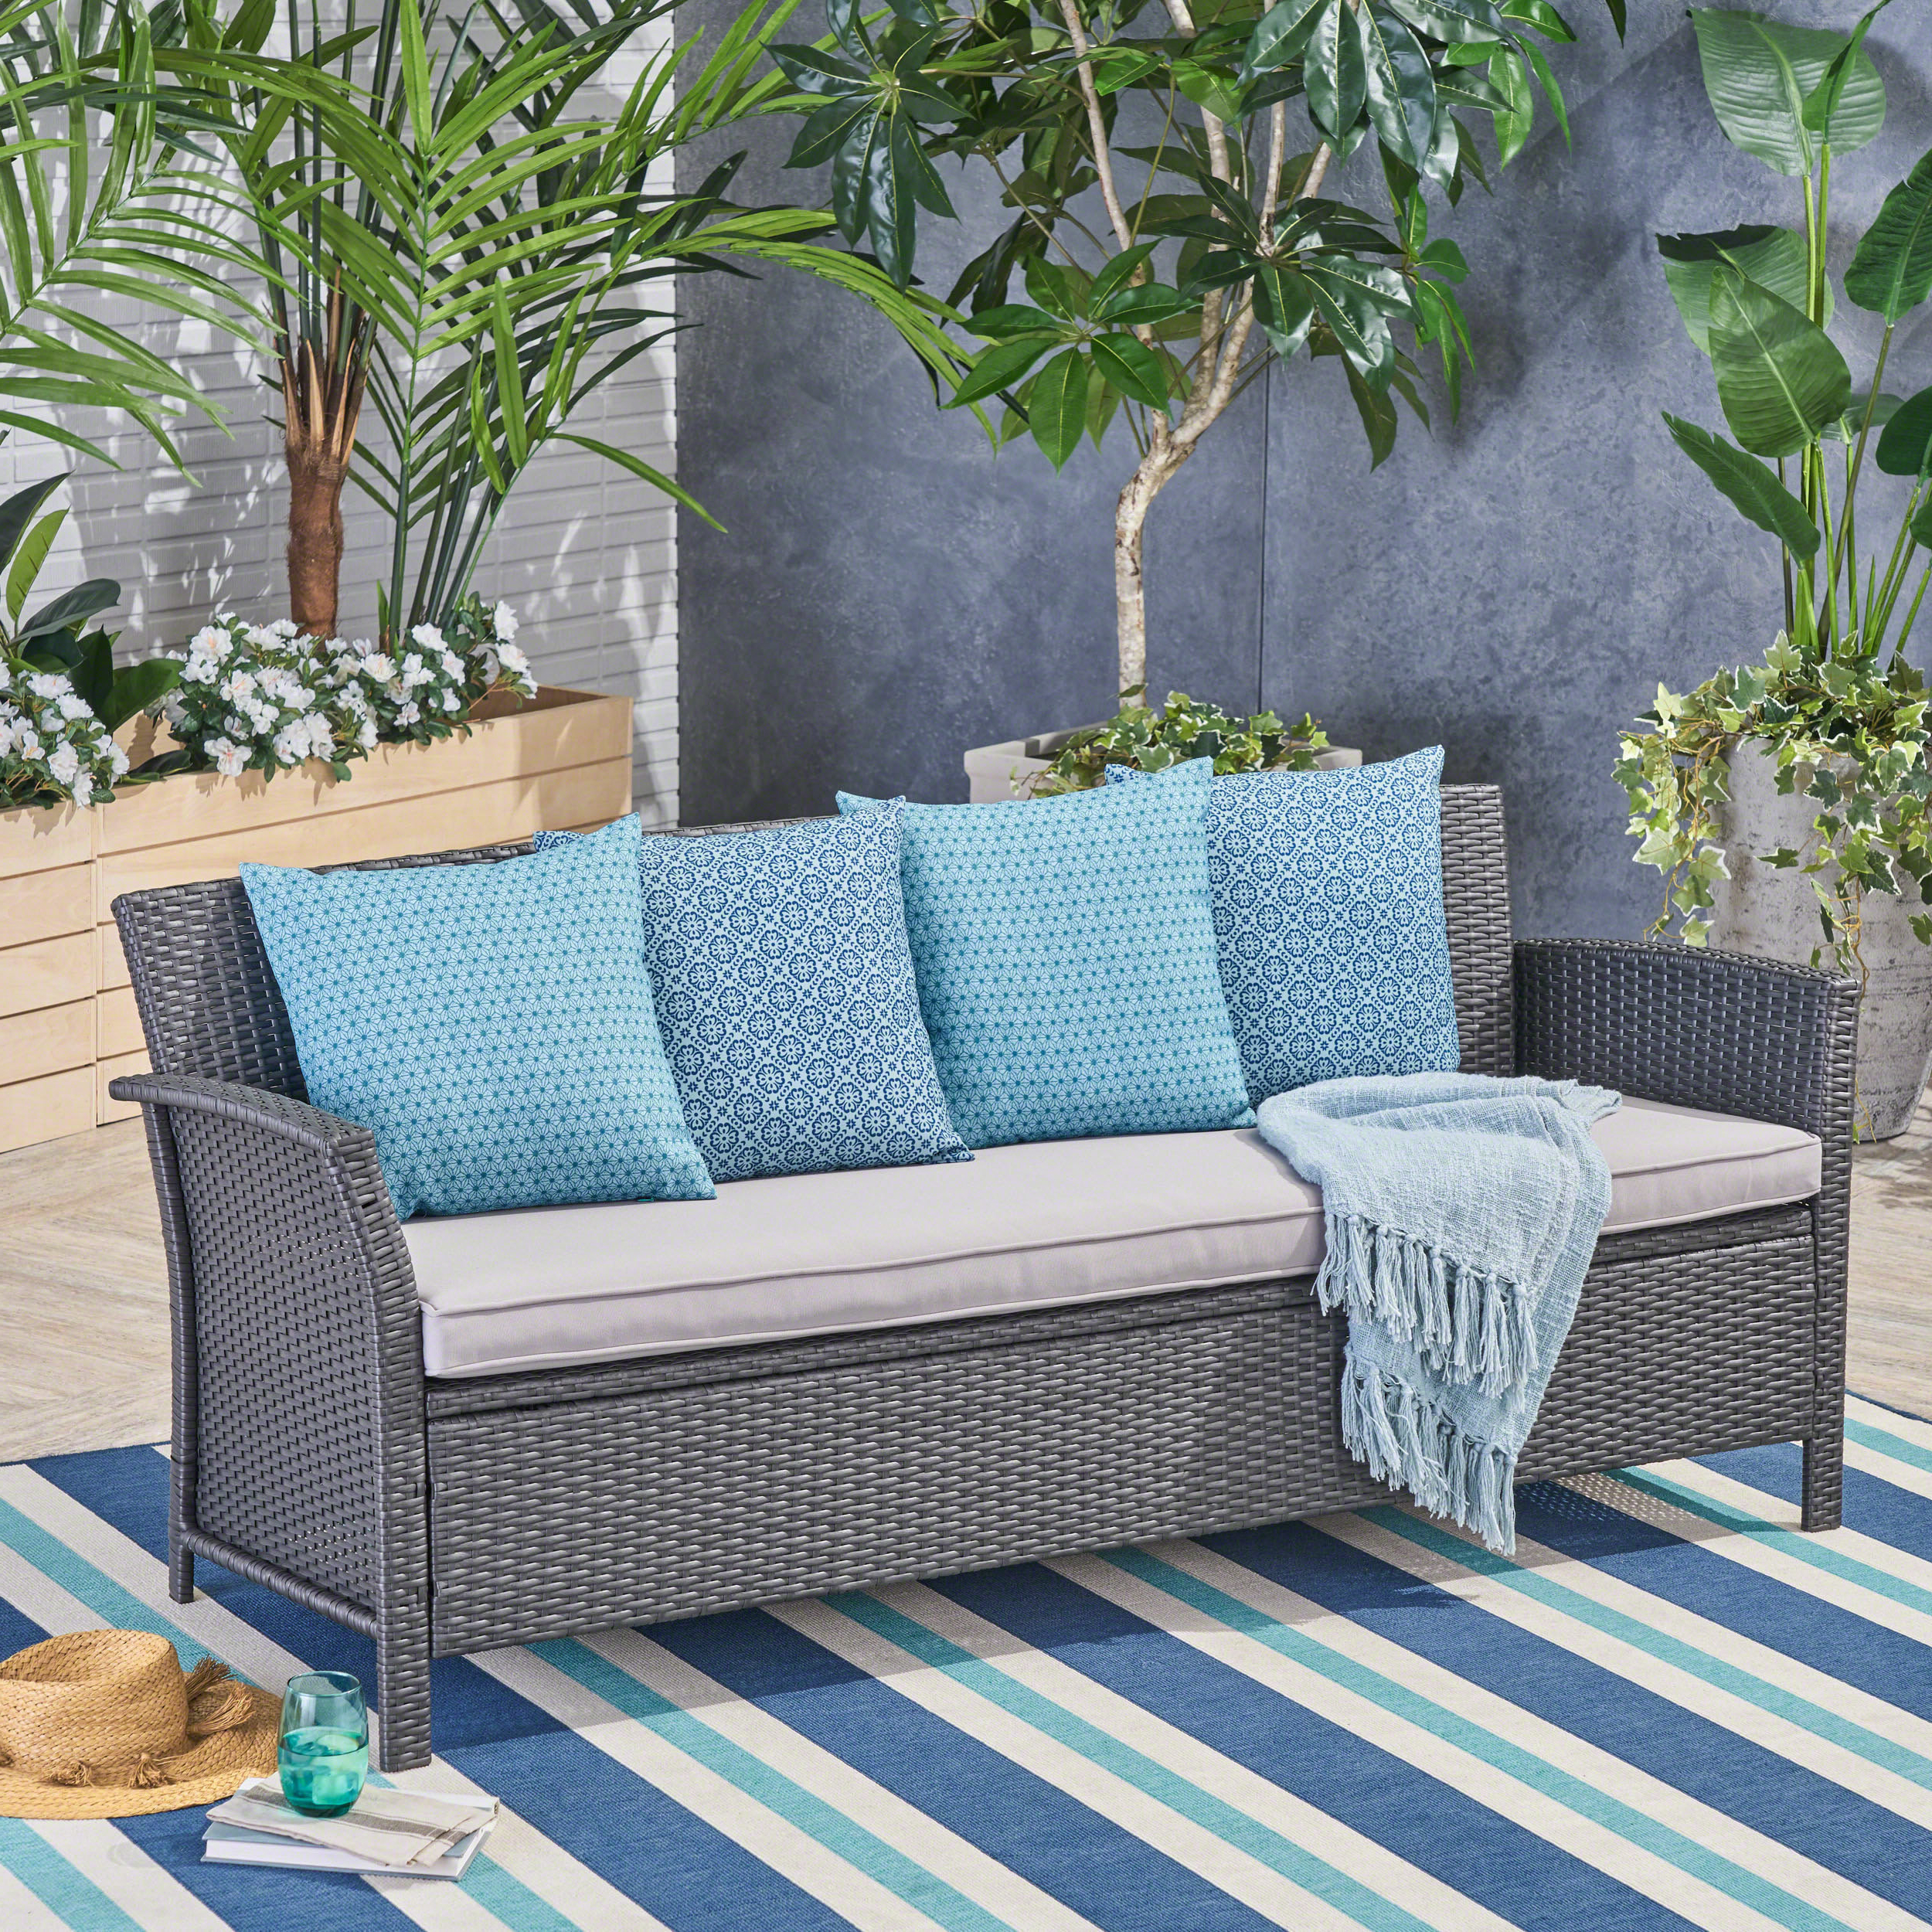 Corchado Patio Sofa With Cushion Regarding Popular Yoselin Patio Sofas With Cushions (View 5 of 20)